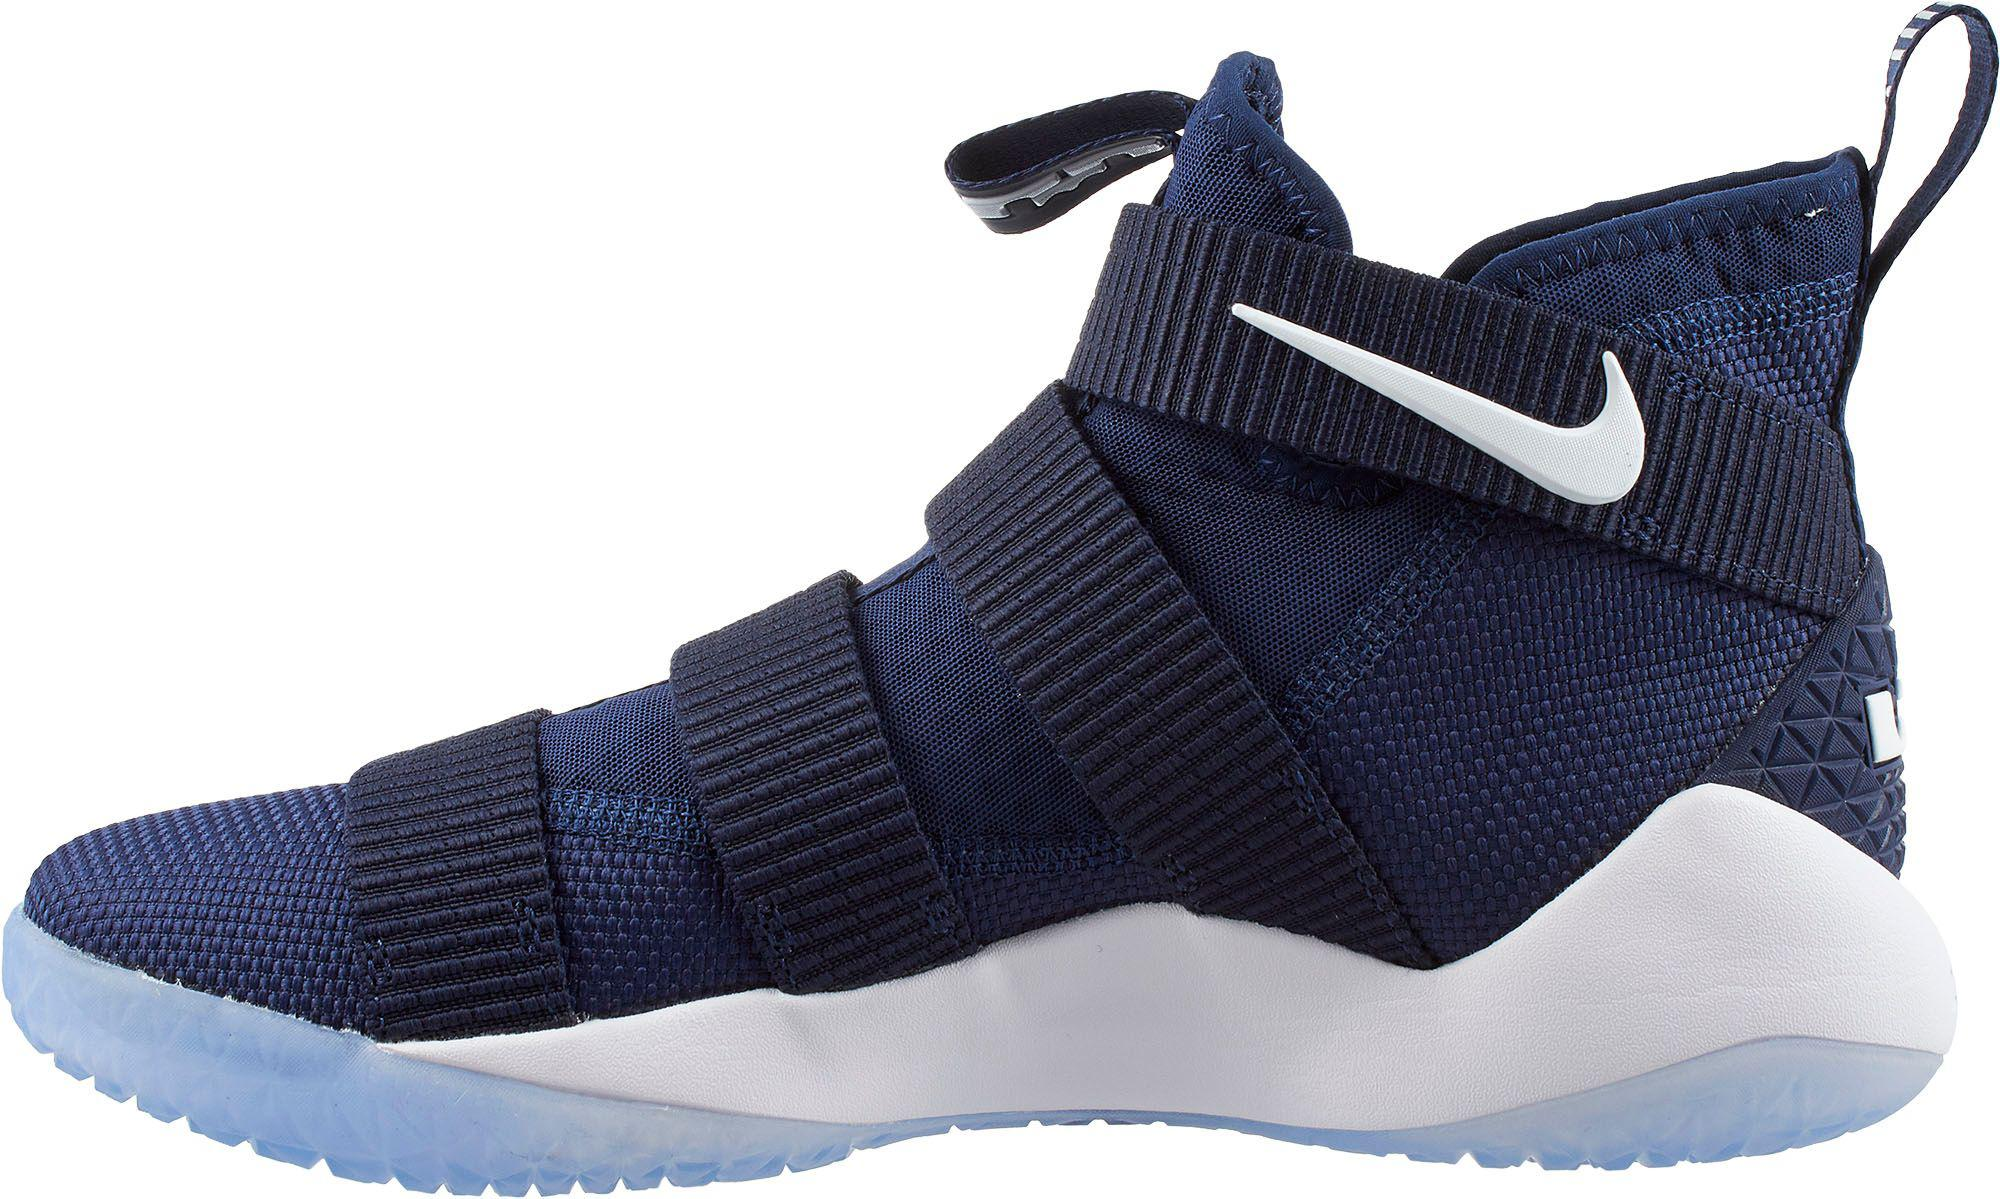 fce3bcbeb4b Lyst - Nike Zoom Lebron Soldier Xi Basketball Shoes in Blue for Men